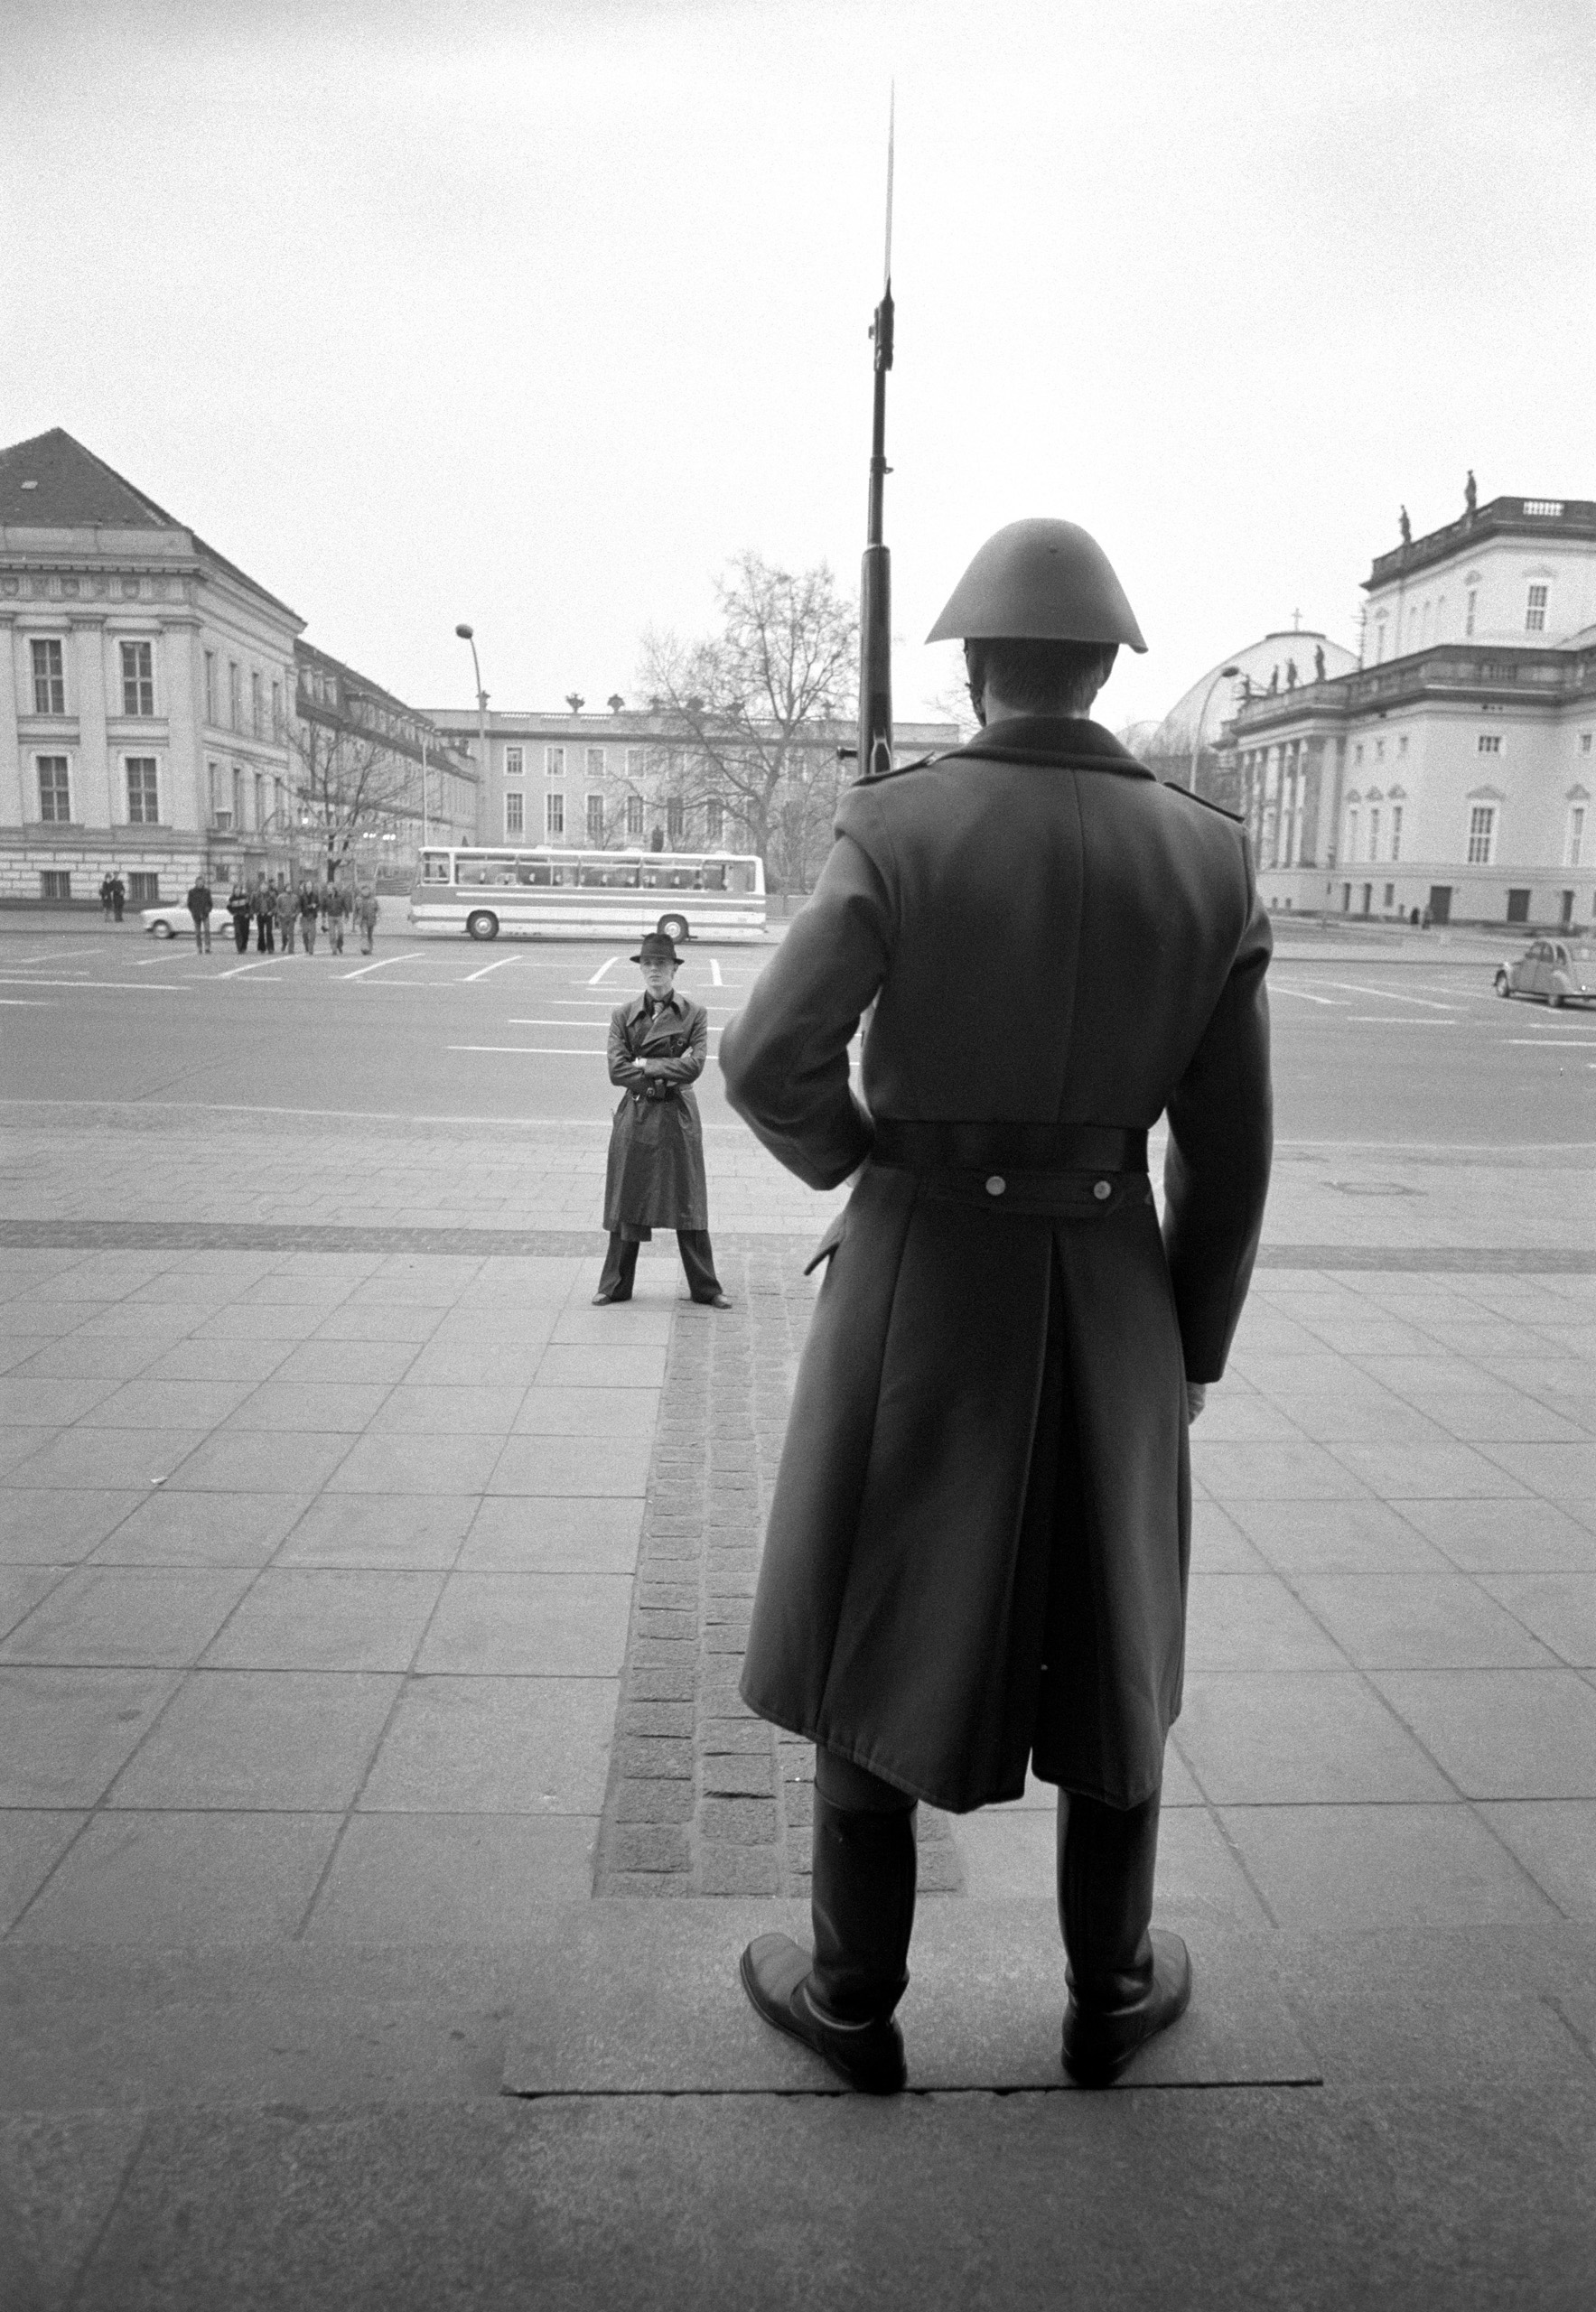 Bowie pauses in front of an armed guard, during a walk around East Berlin, 1976.